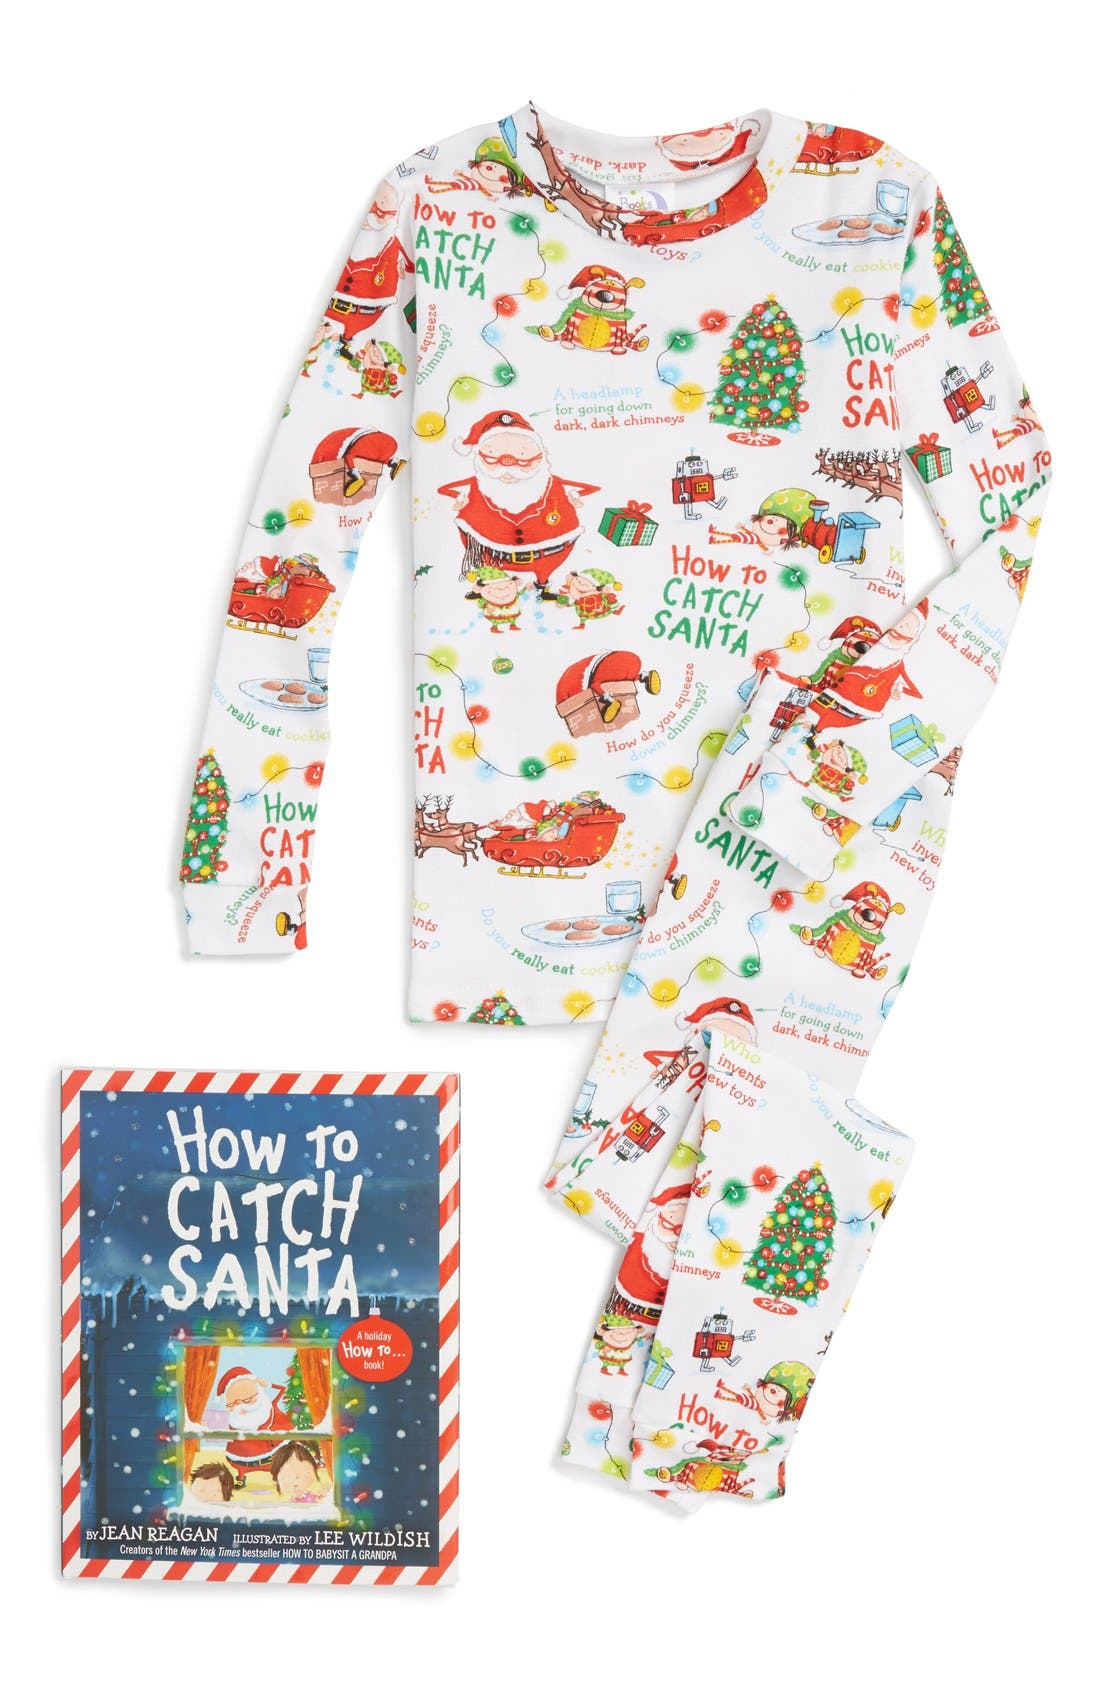 Main Image - Books to Bed How to Catch a Santa Fitted Two-Piece Pajamas & Book Set (Toddler, Little Kid & Big Kid)